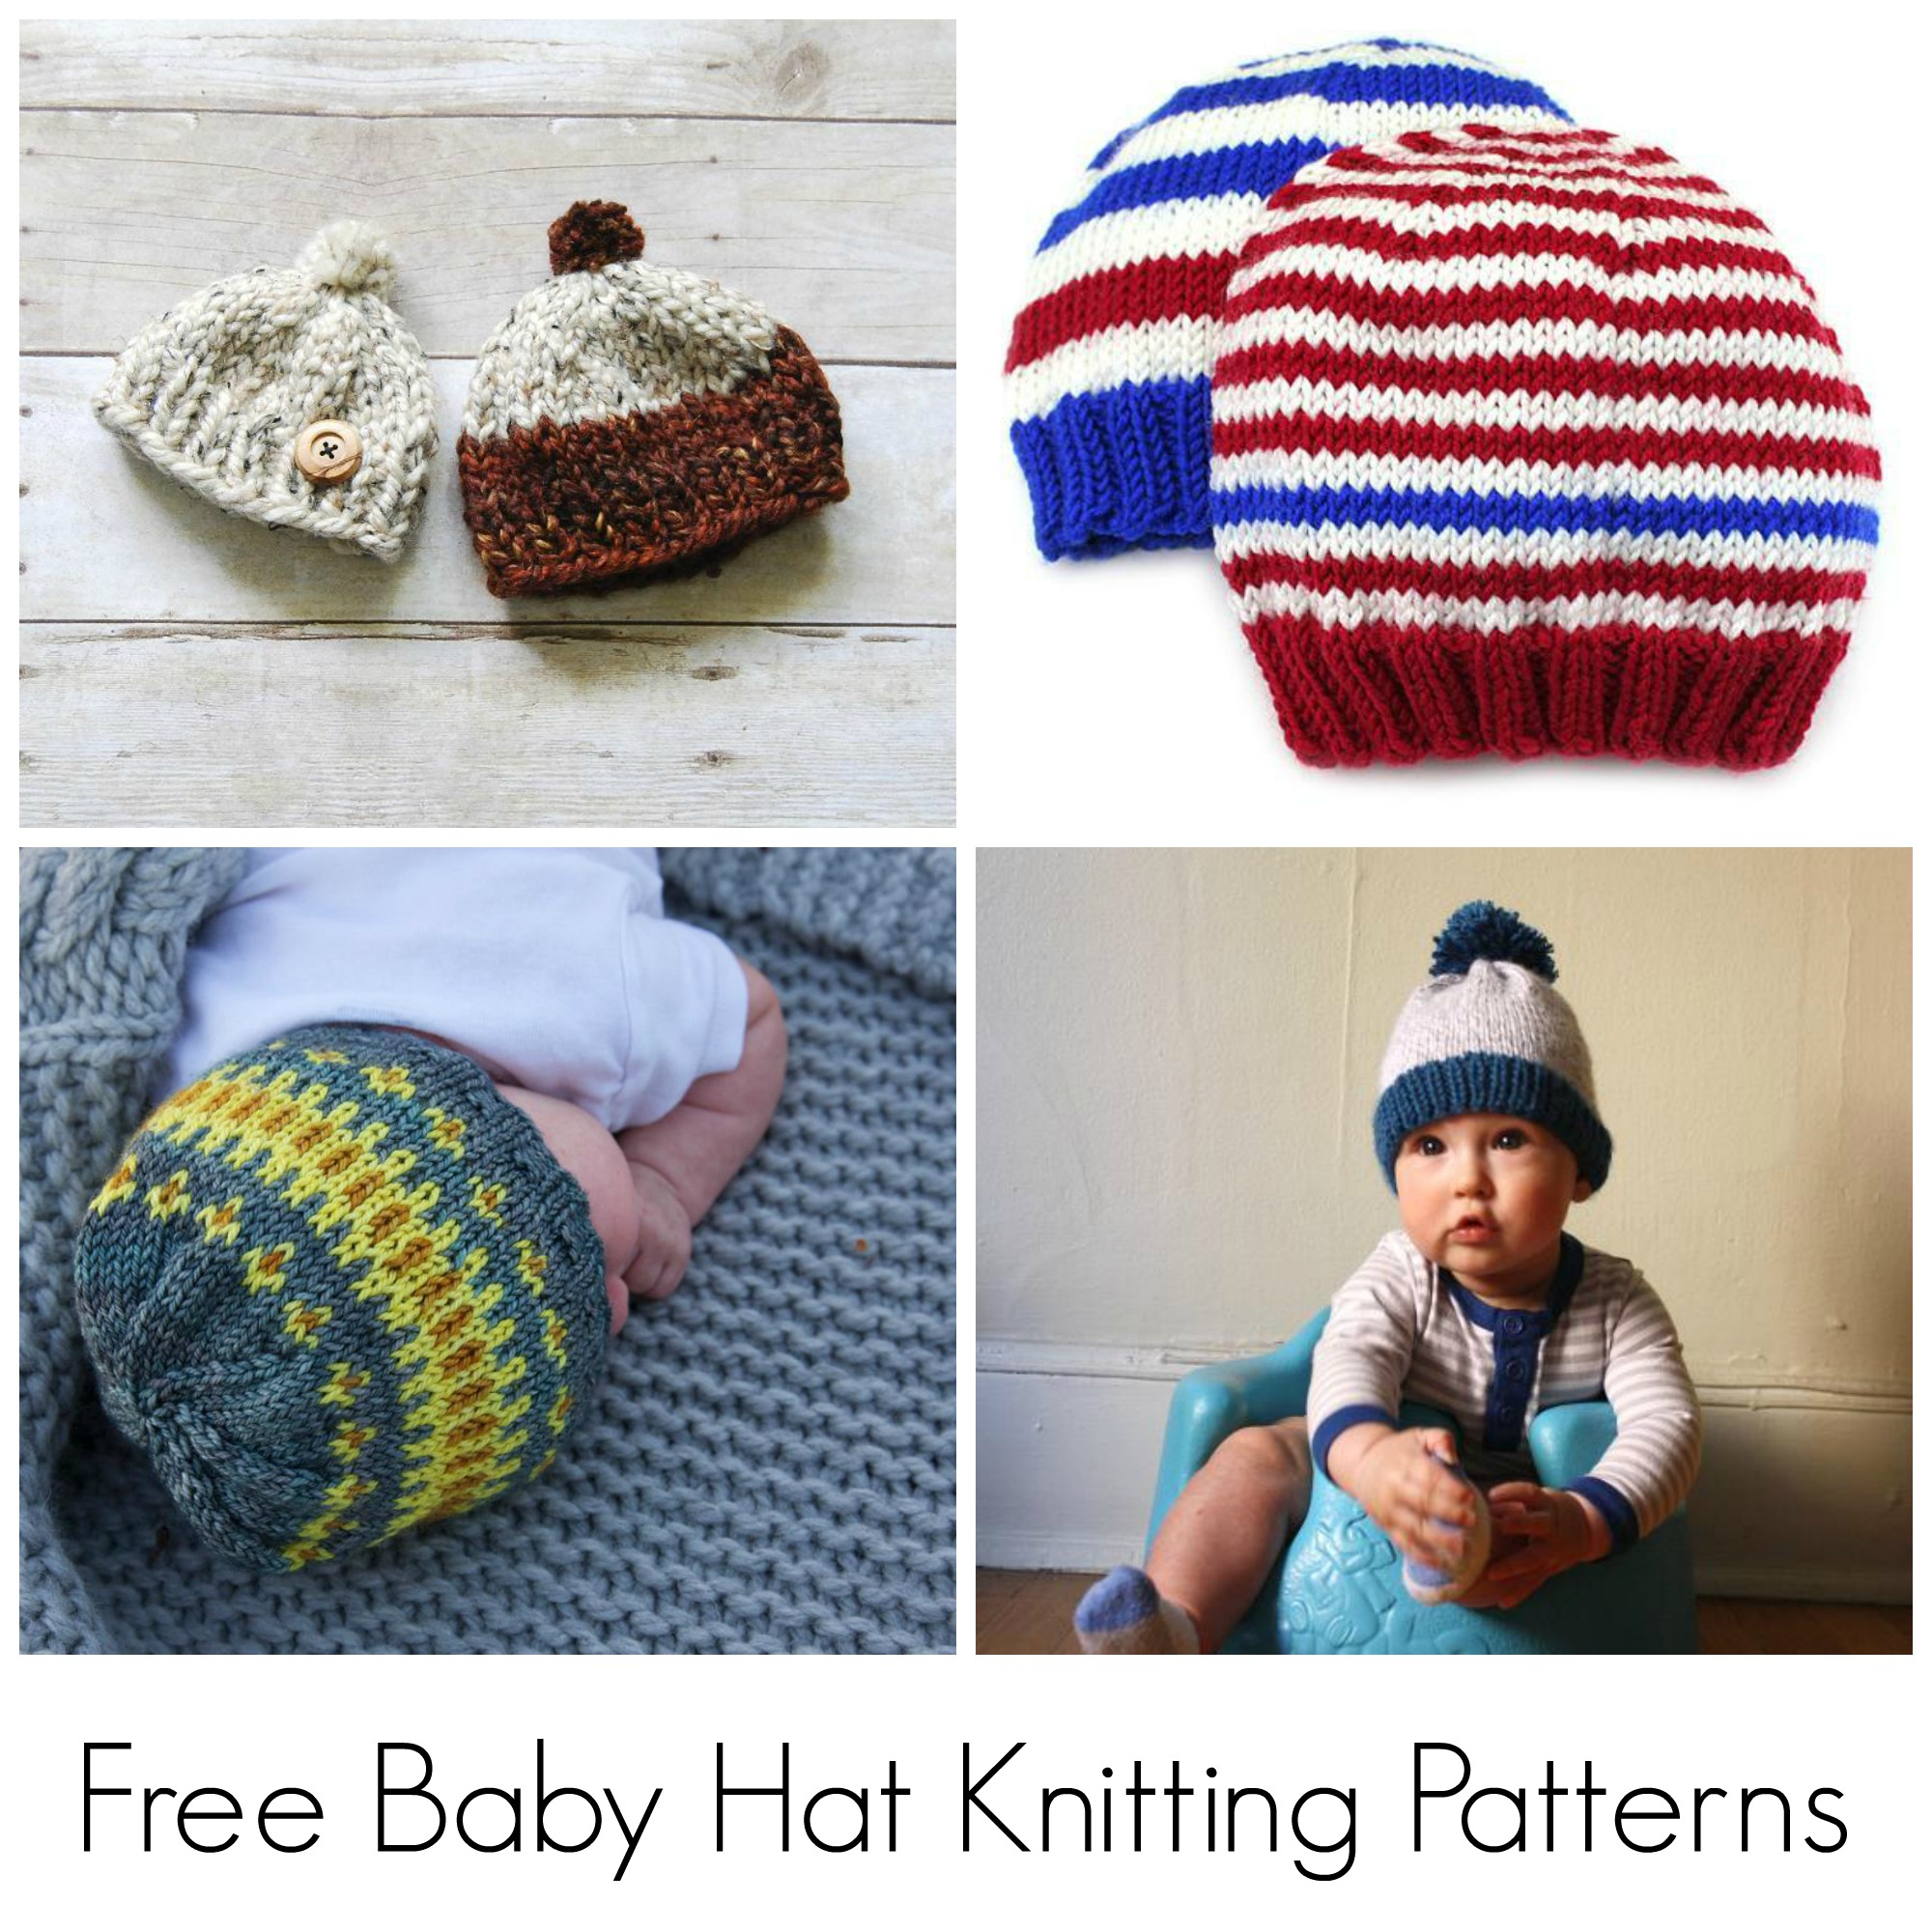 8 Ply Wool Knitting Patterns 10 Free Knitting Patterns For Ba Hats On Craftsy